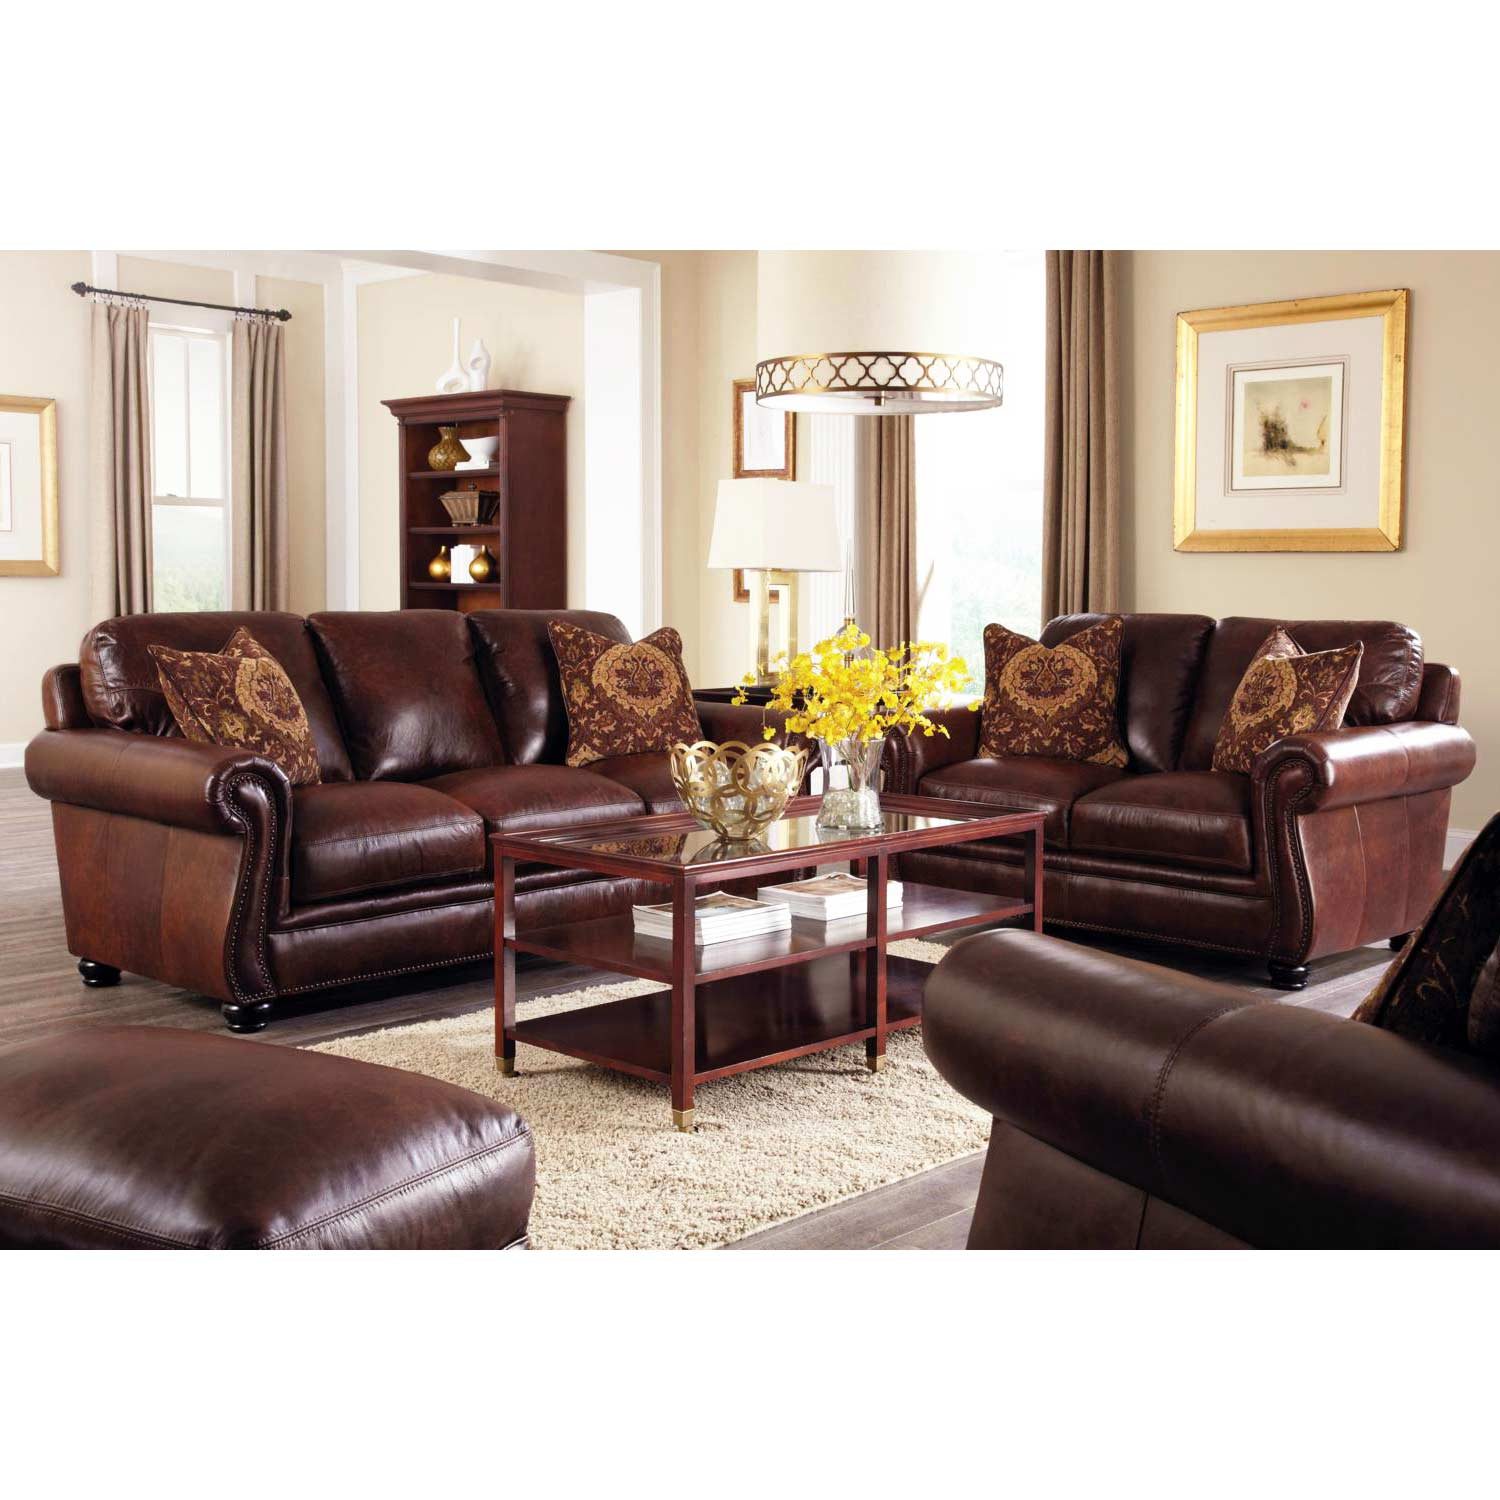 Bedroom Furniture Stores St Louis Cheap Bedroom Furniture Sets 500 28 Images 10 Furniture